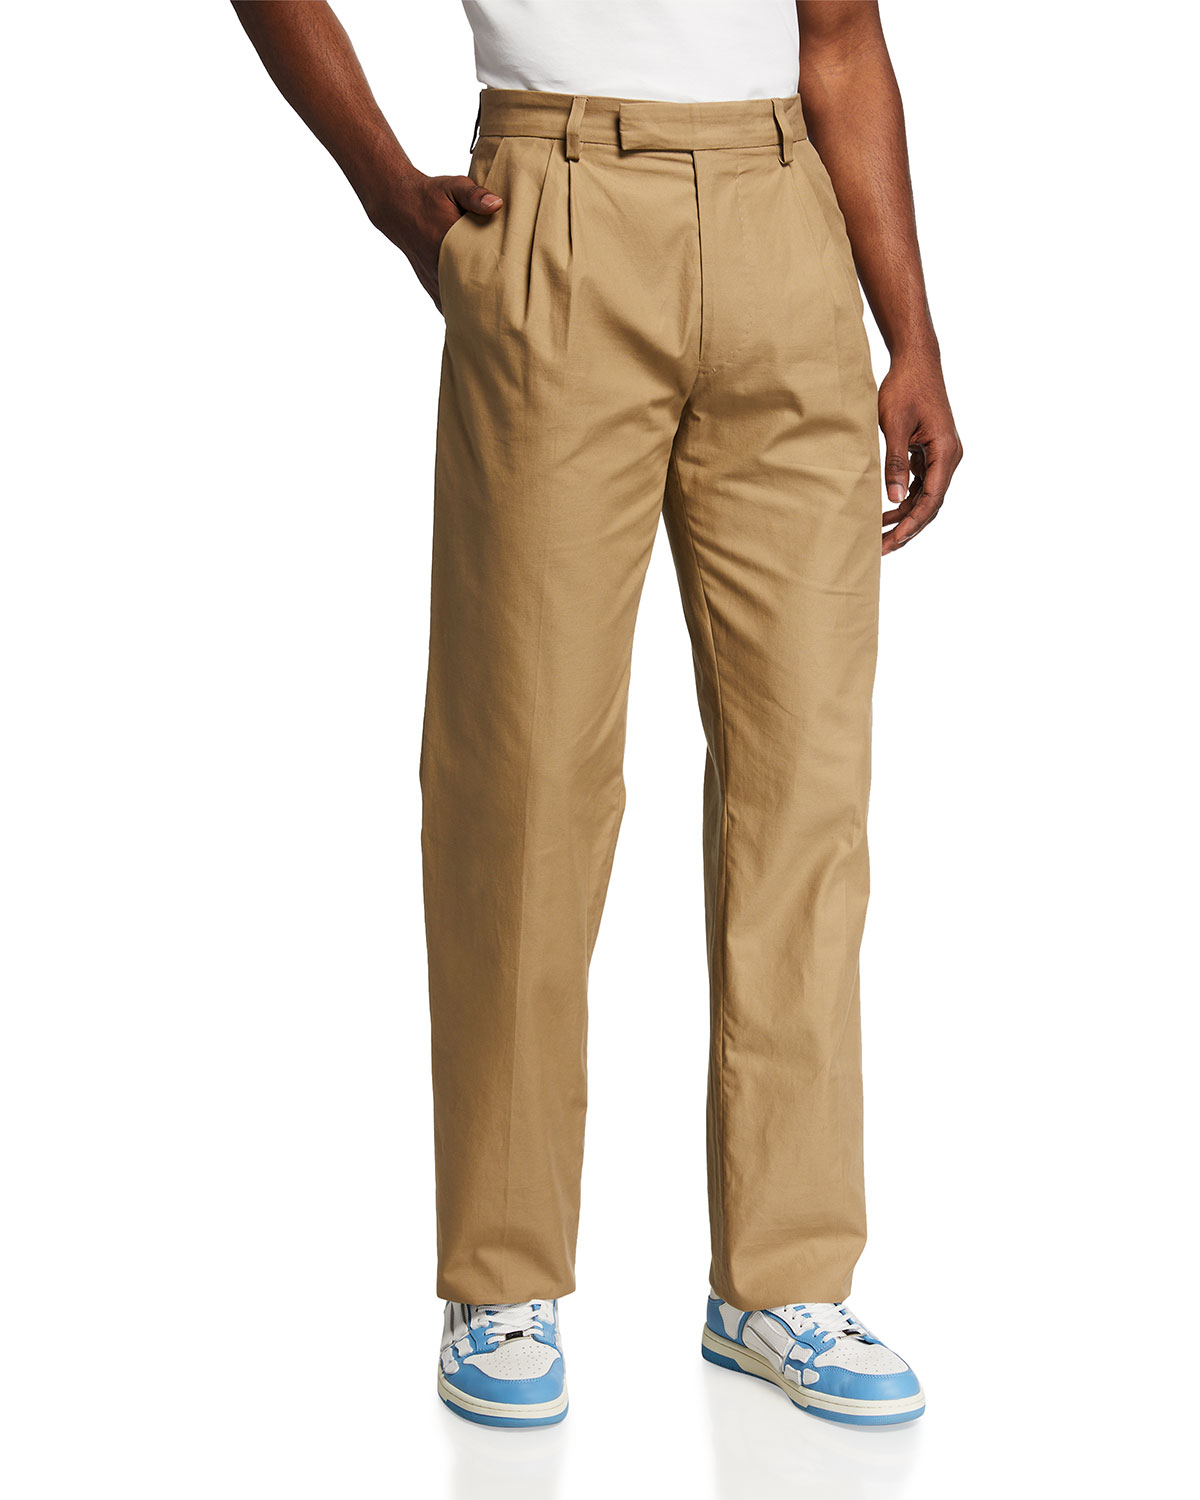 Men's Pleated Relaxed High-Rise Trousers